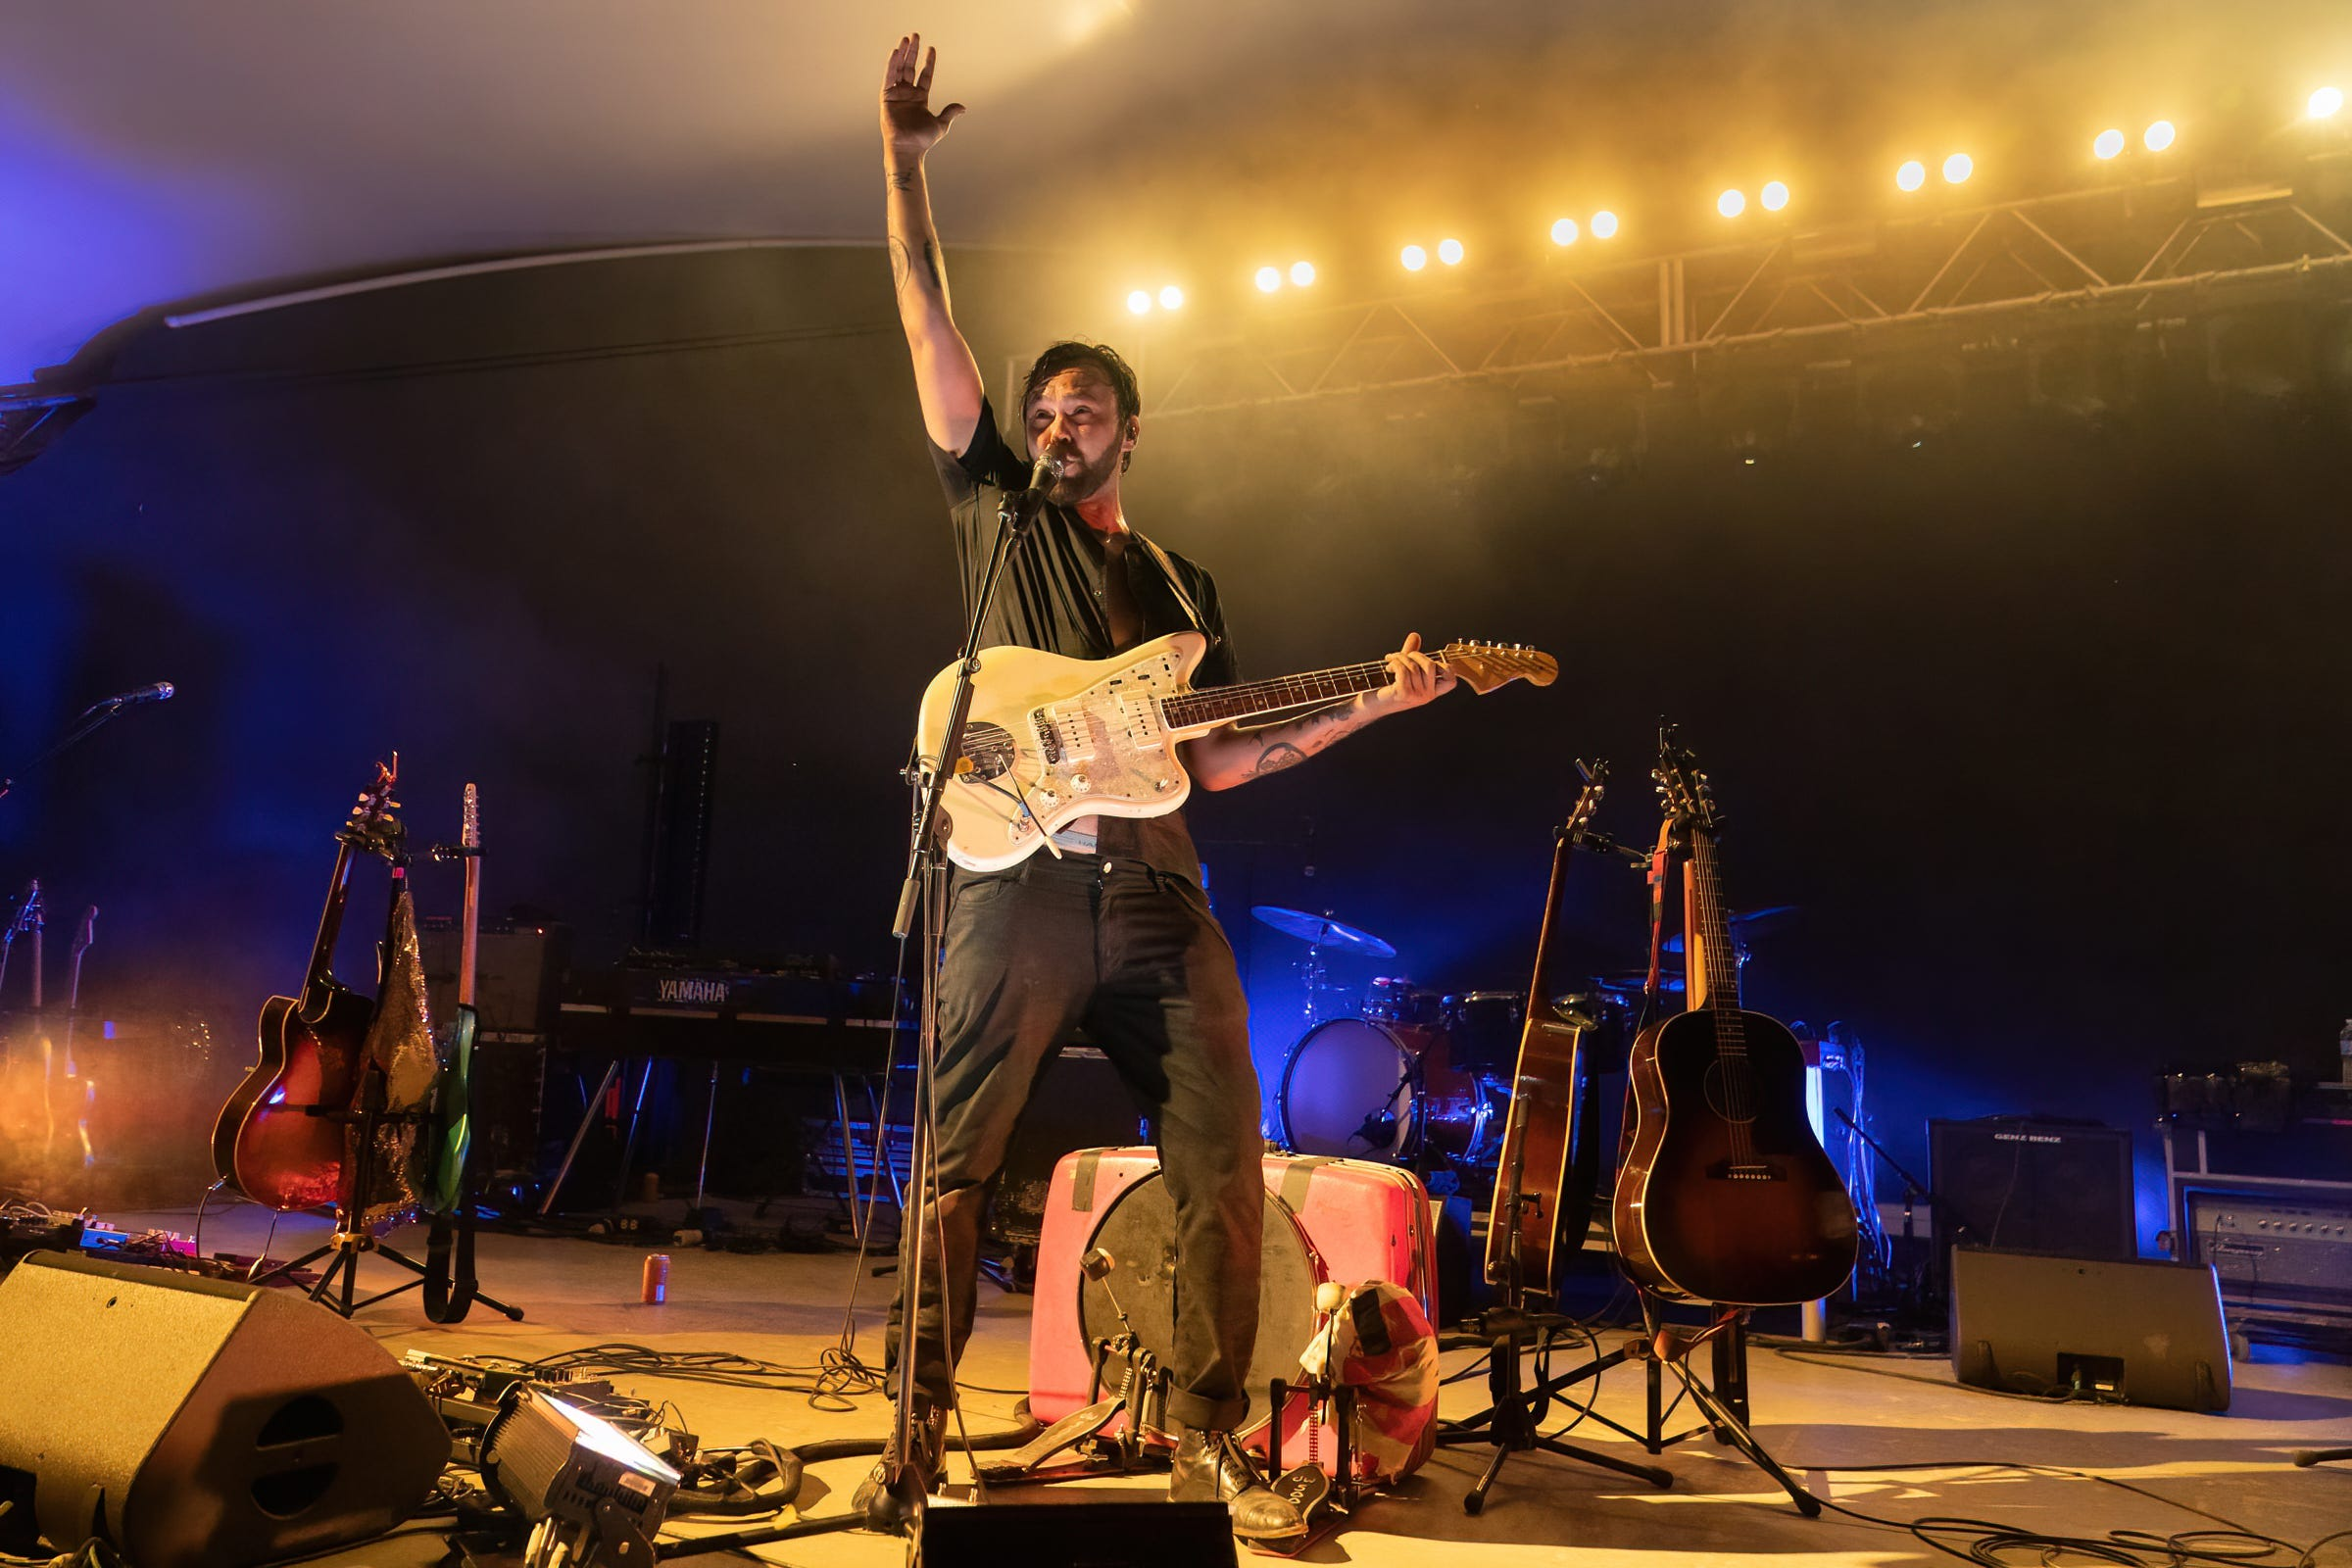 Shakey Graves revels in the return to live music on first of two nights at Stubb s